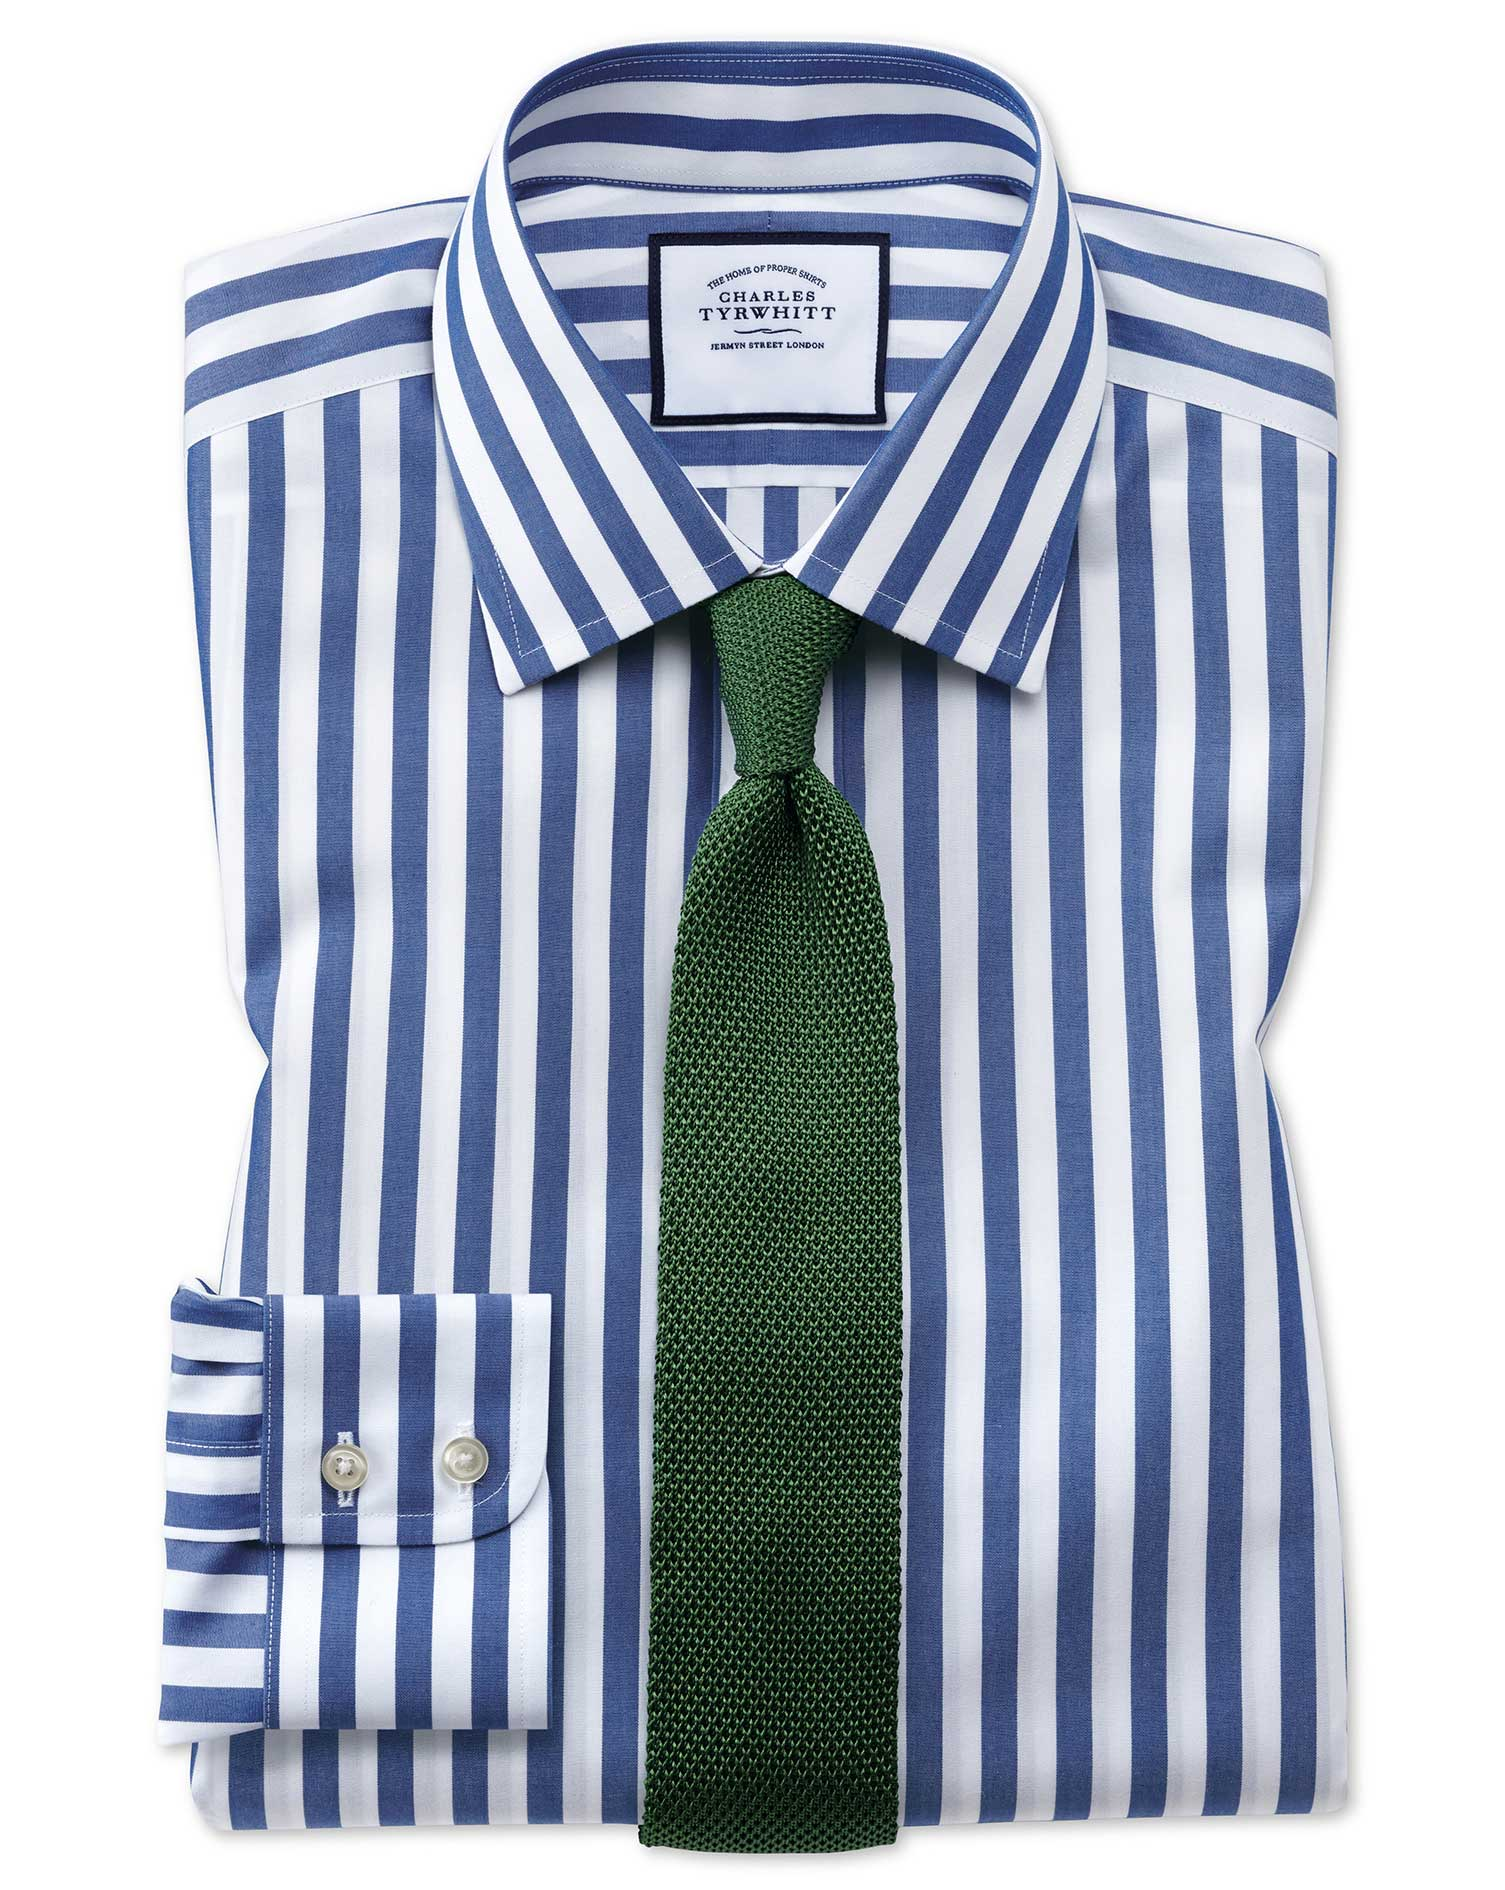 Slim Fit Non-Iron Jermyn Street Stripes Blue Cotton Formal Shirt Single Cuff Size 18/37 by Charles T